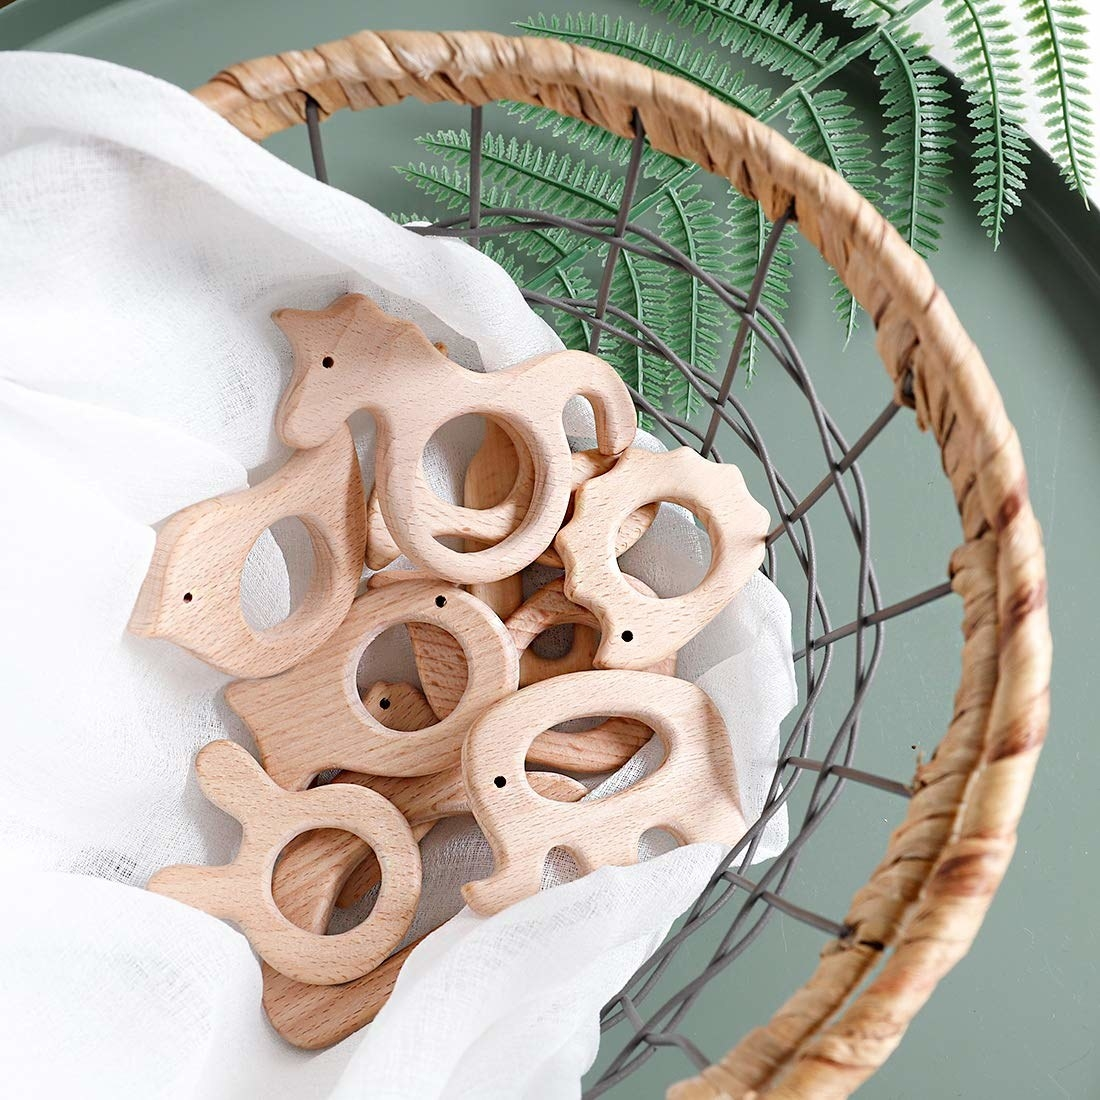 A basket filled with animal-shaped teethers made of natural wood